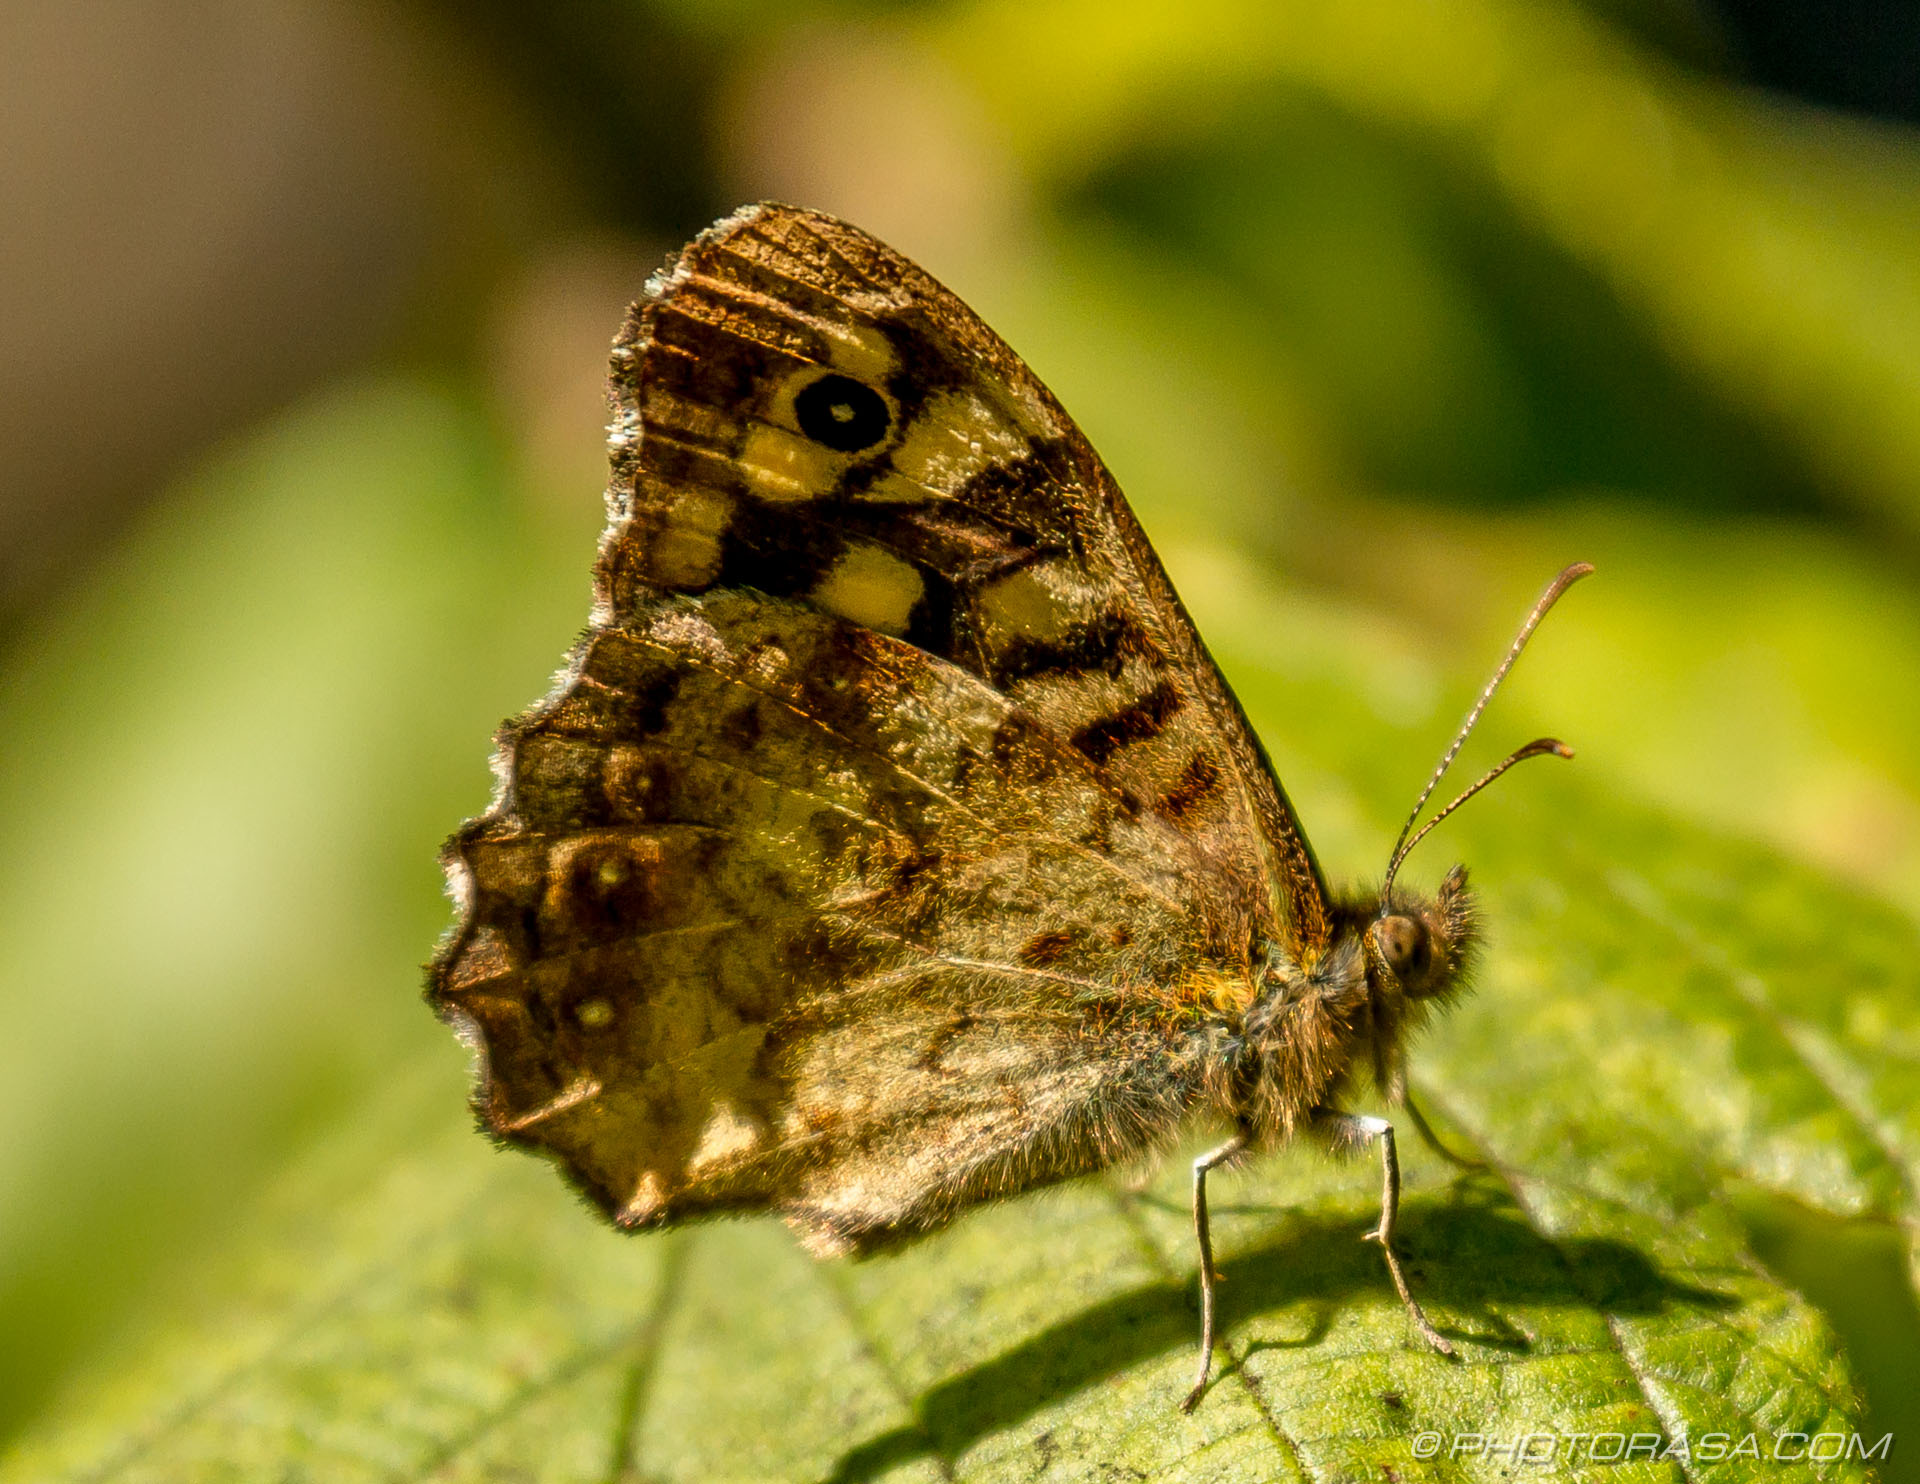 https://photorasa.com/speckled-wood-butterfly/speckled-wood-butterfly-underwing/